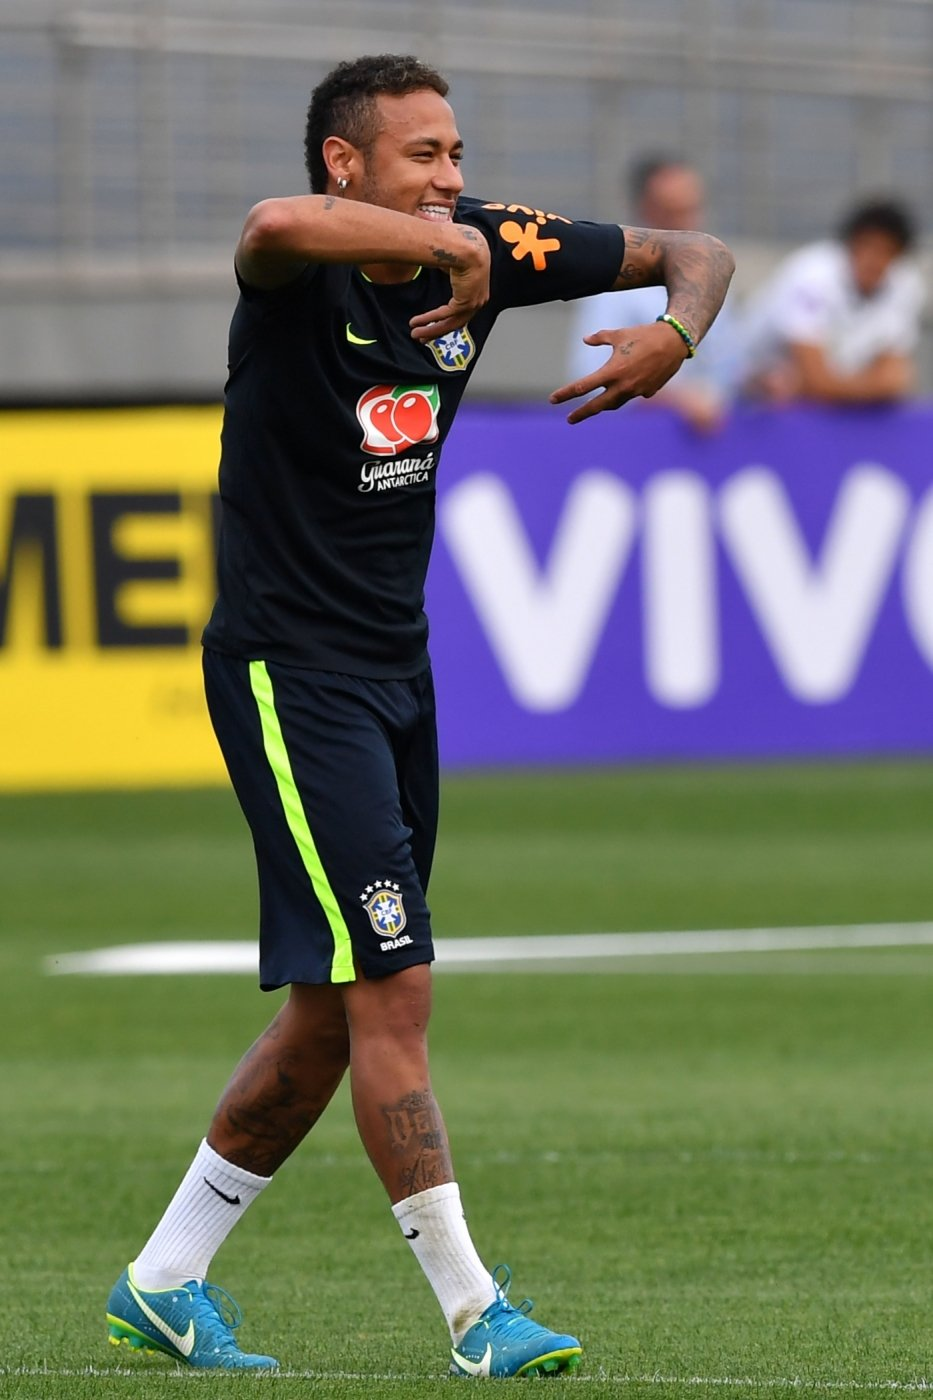 Brazil's team player Neymar gestures during a training session at the Gremio team training centre in Porto Alegre, Brazil on August 28, 2017 ahead of their 2018 FIFA Russia World Cup qualifier match against Ecuador on August 31. / AFP PHOTO / NELSON ALMEIDA